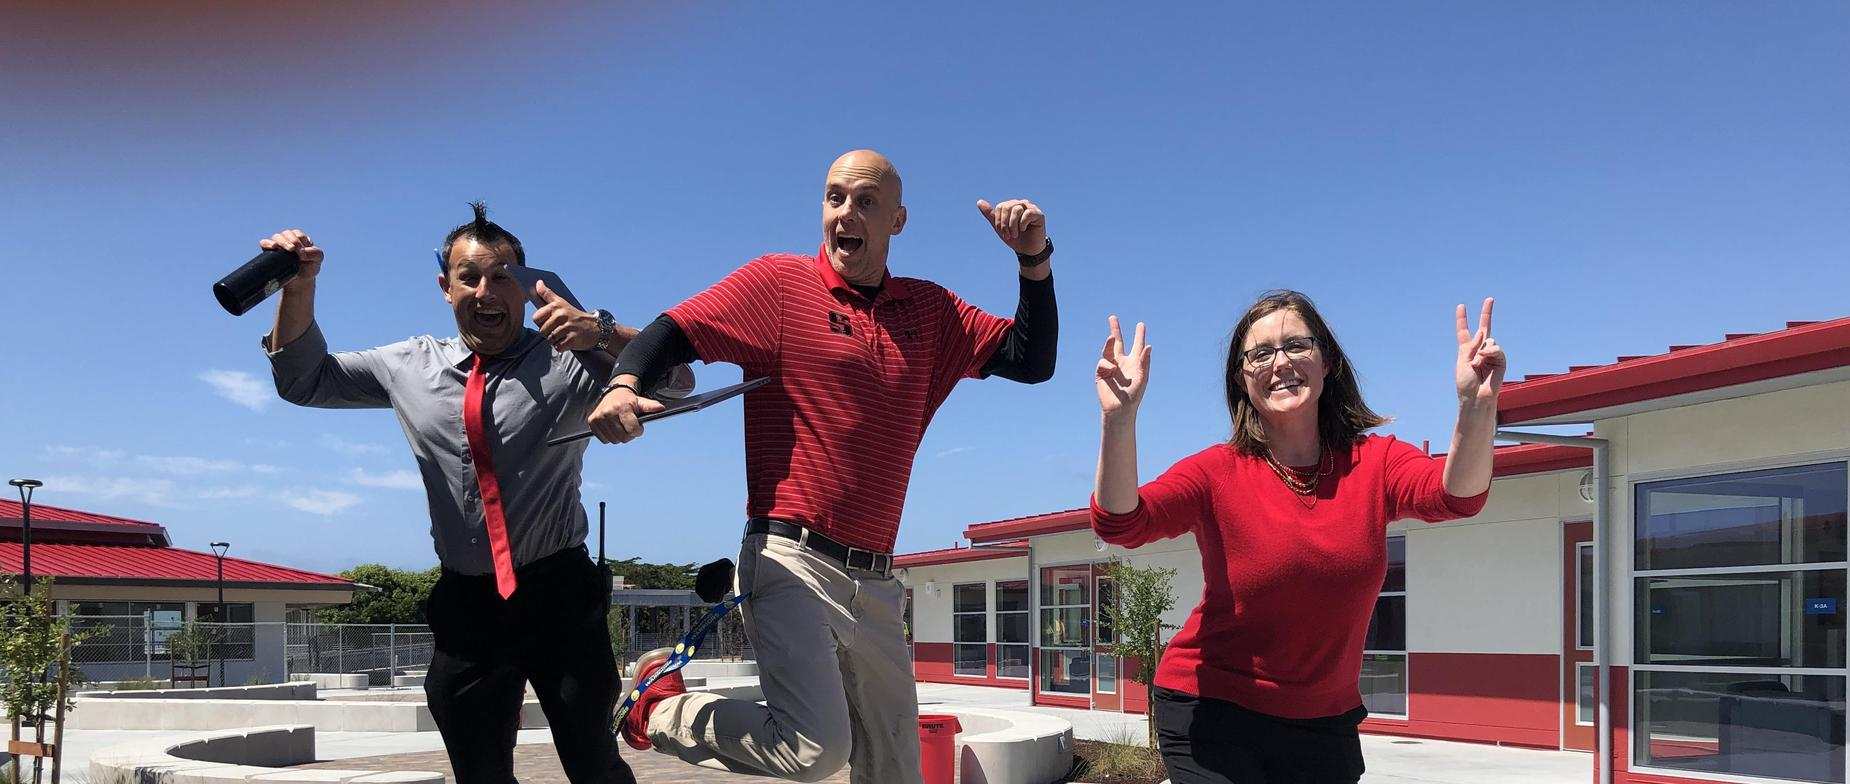 The Seaside High School administration team excited to start the school year.